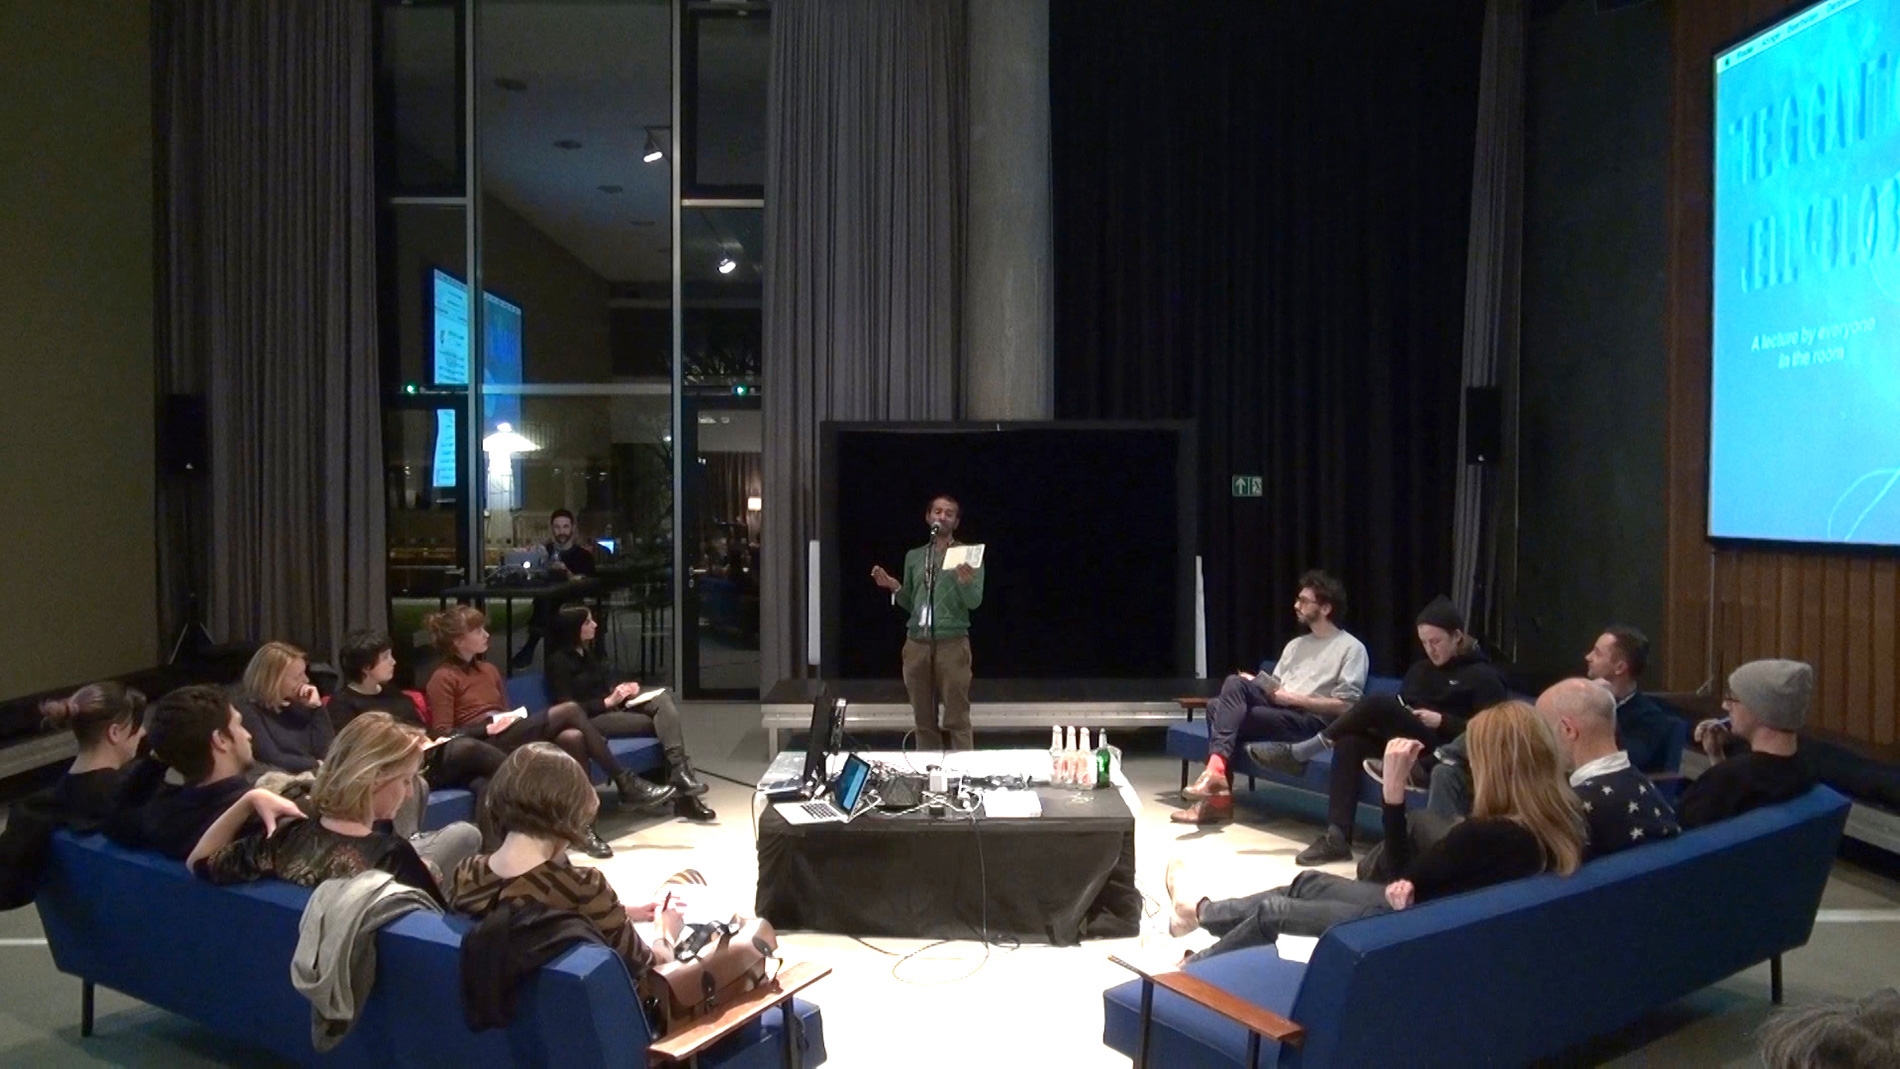 at transmediale 2016 - This version included a sound intervention by sound artist Dimitris Papadatos.